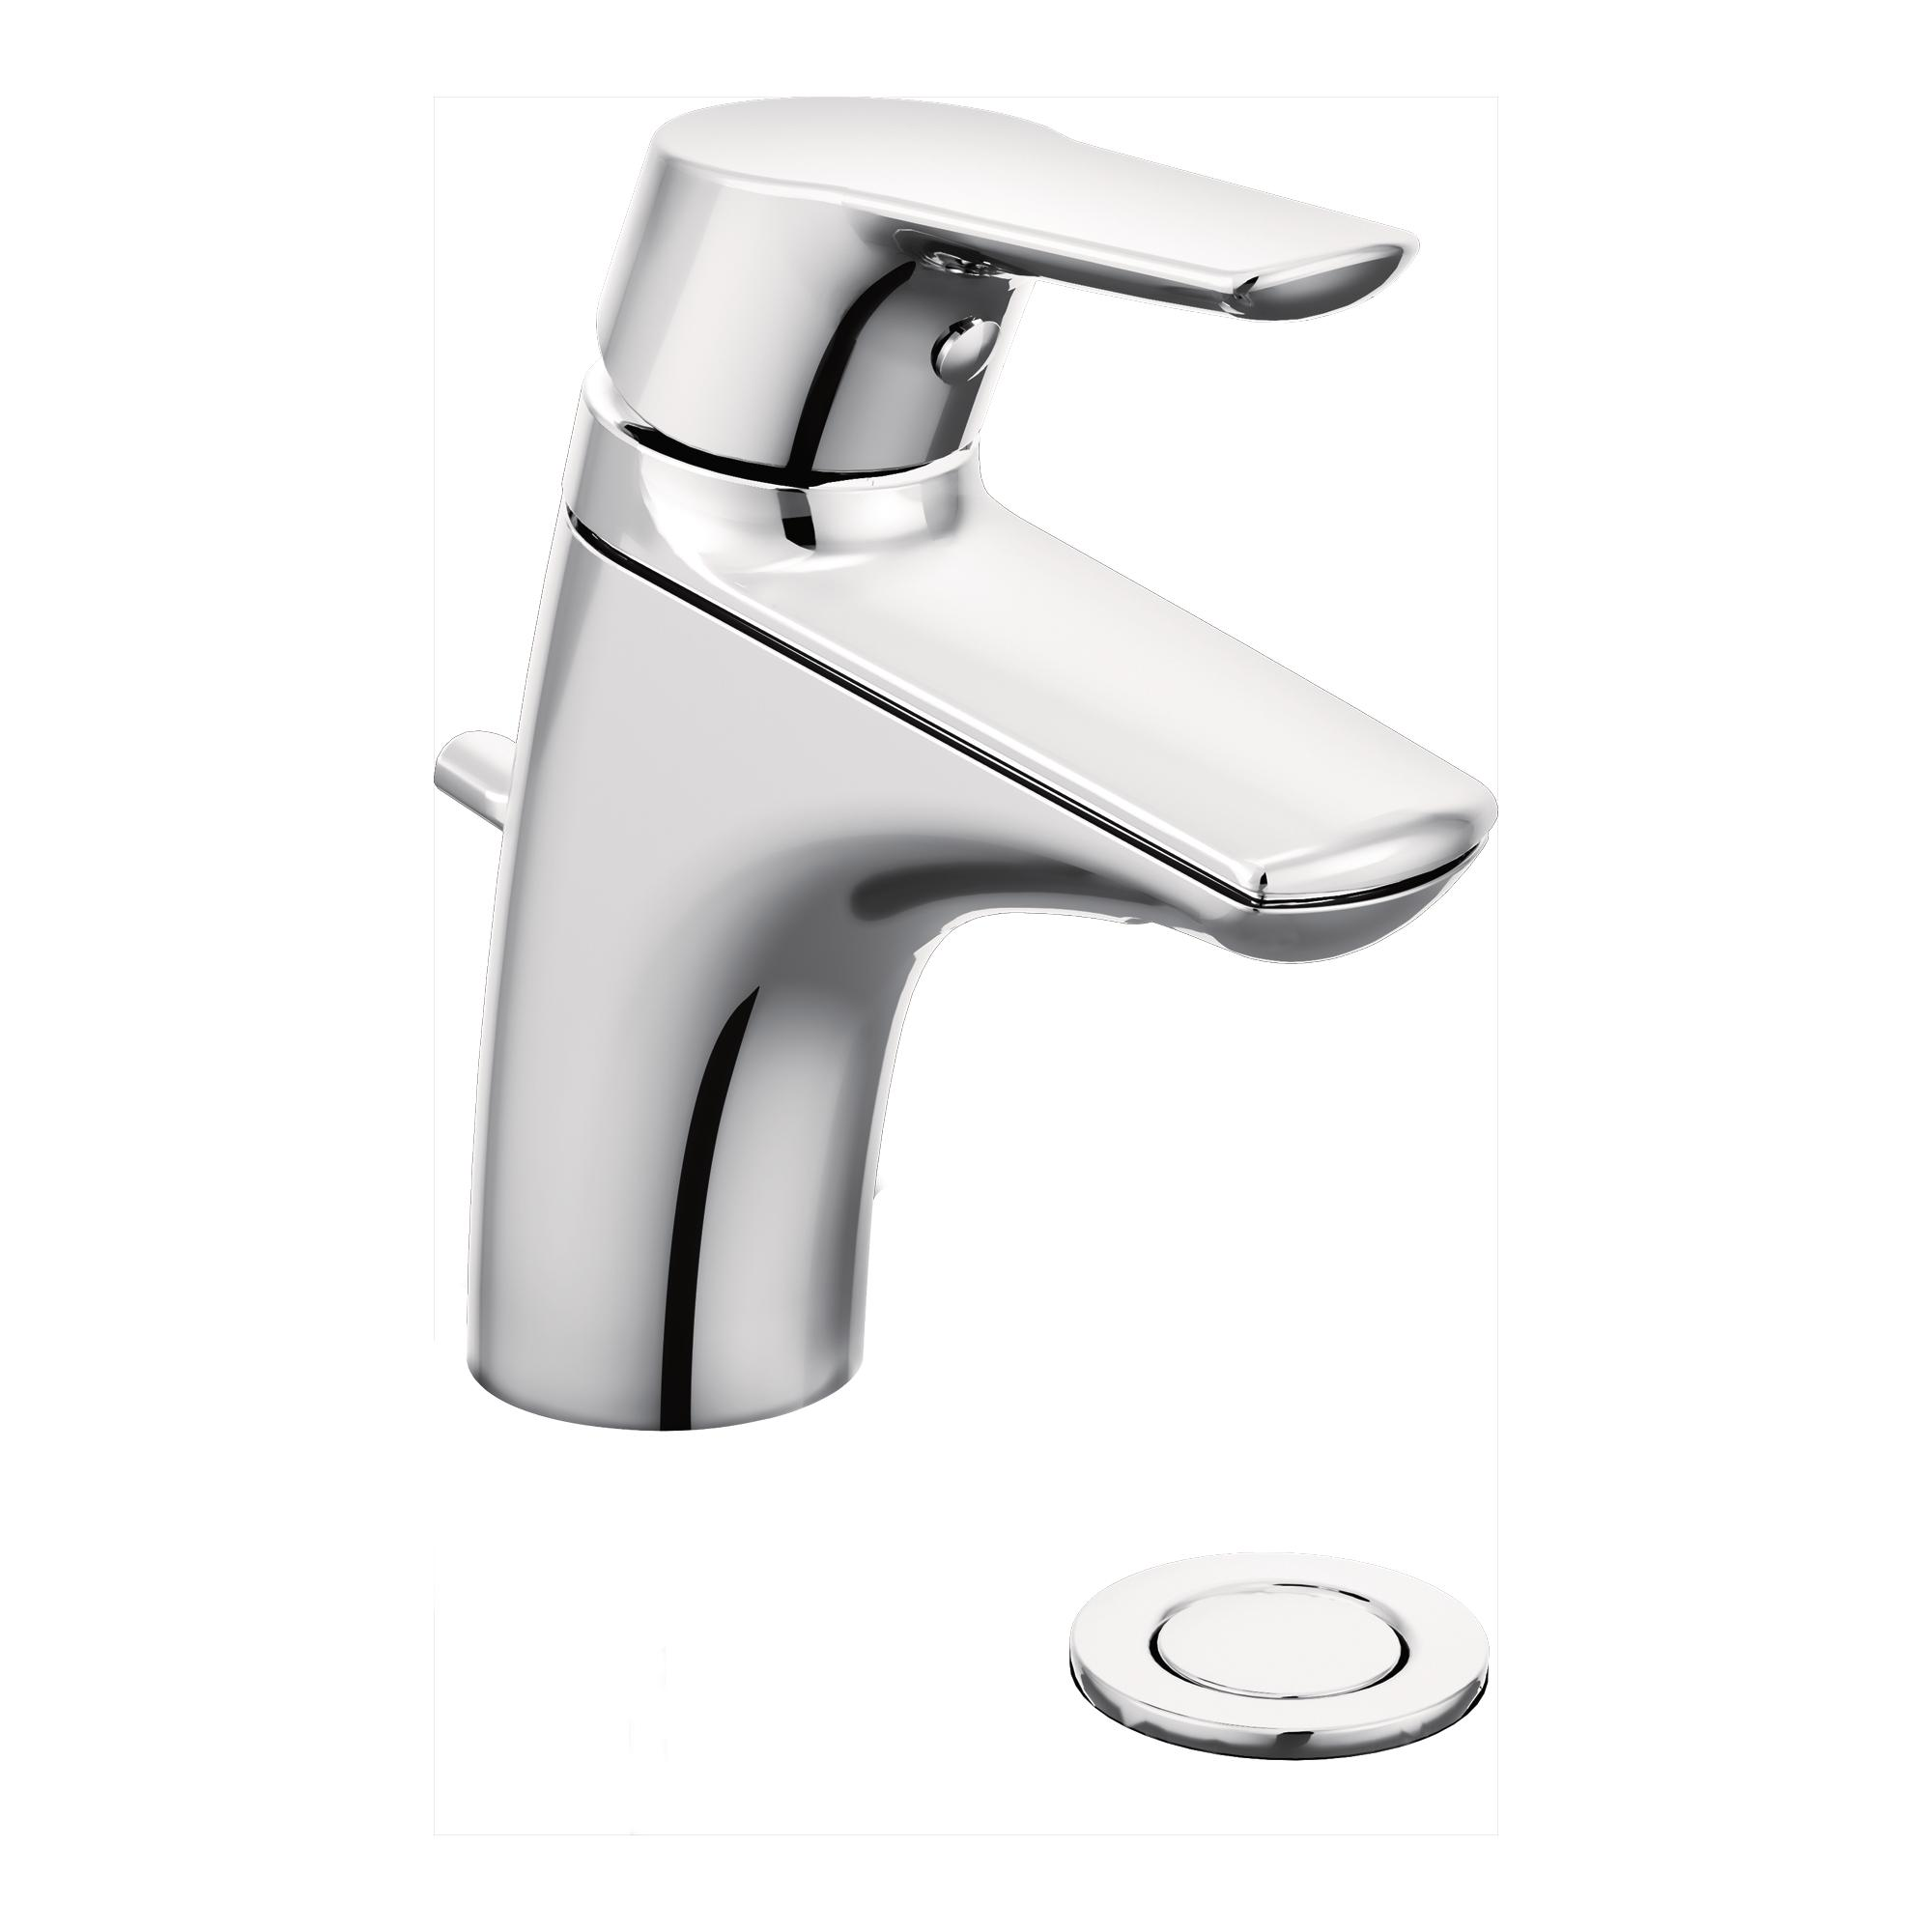 Moen 6810 Method One Handle Low Arc Bathroom Faucet